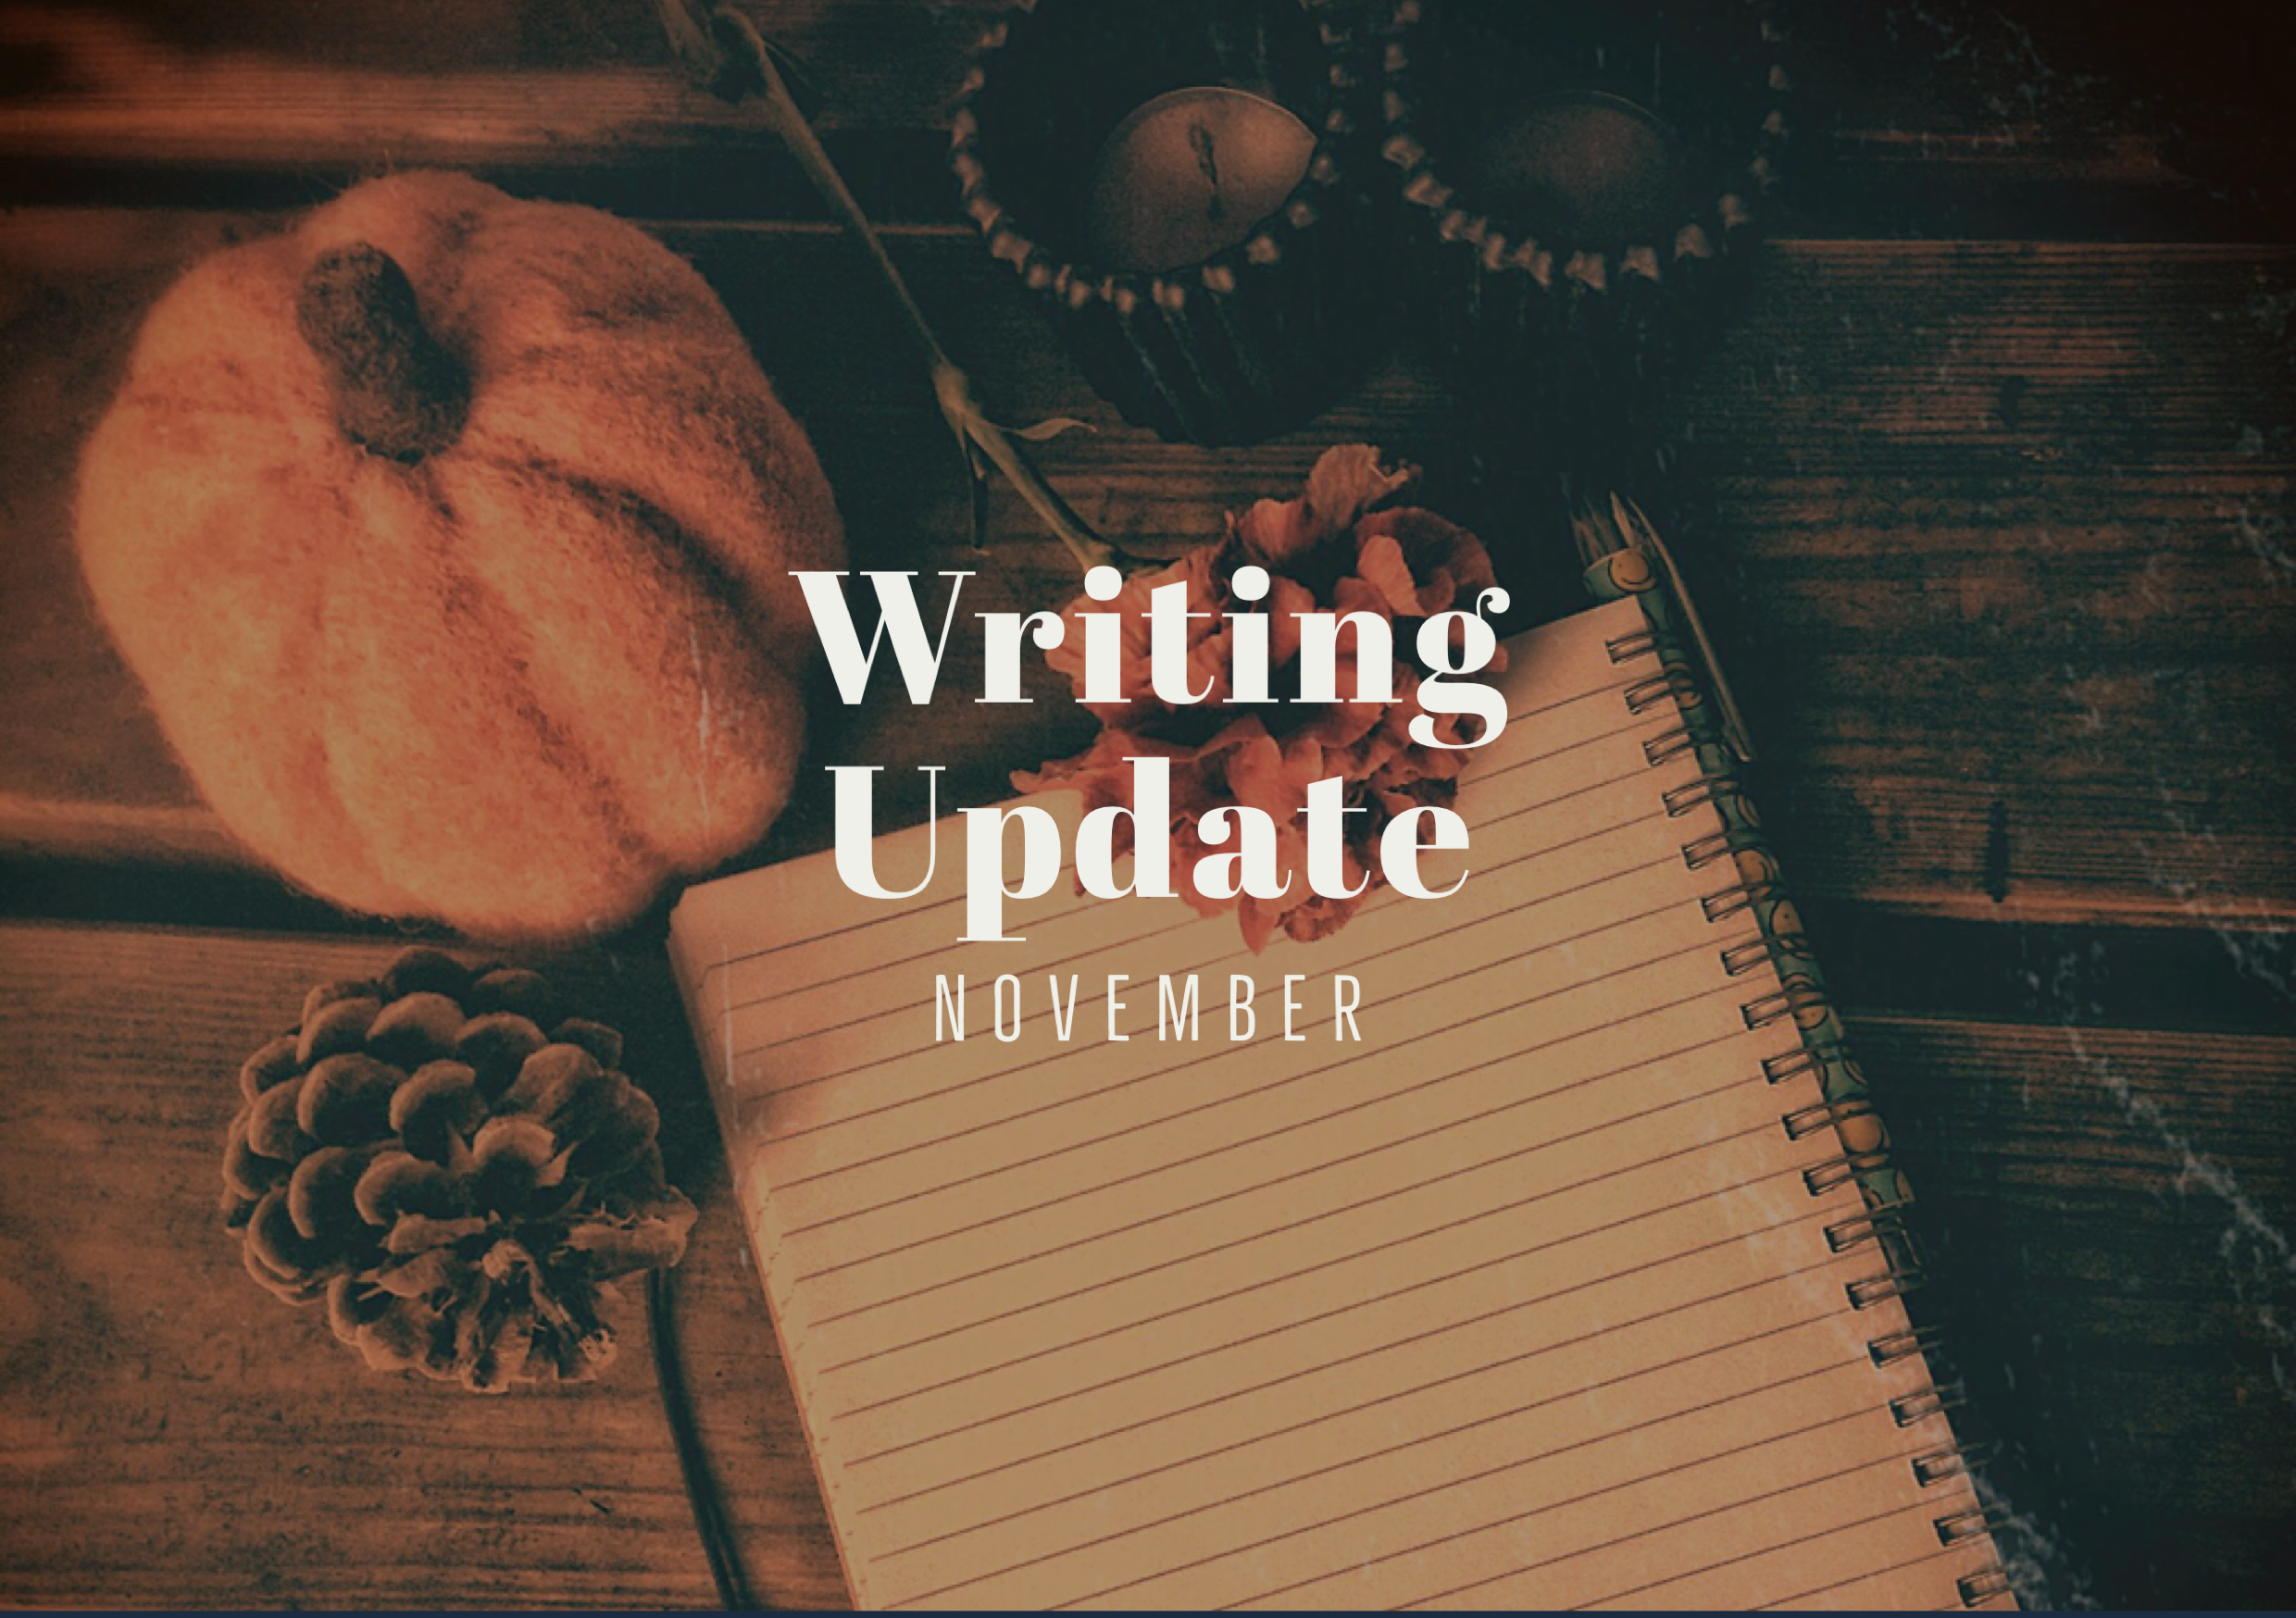 NOVEMBER 2020 Writing Update #1: The Secrets of November